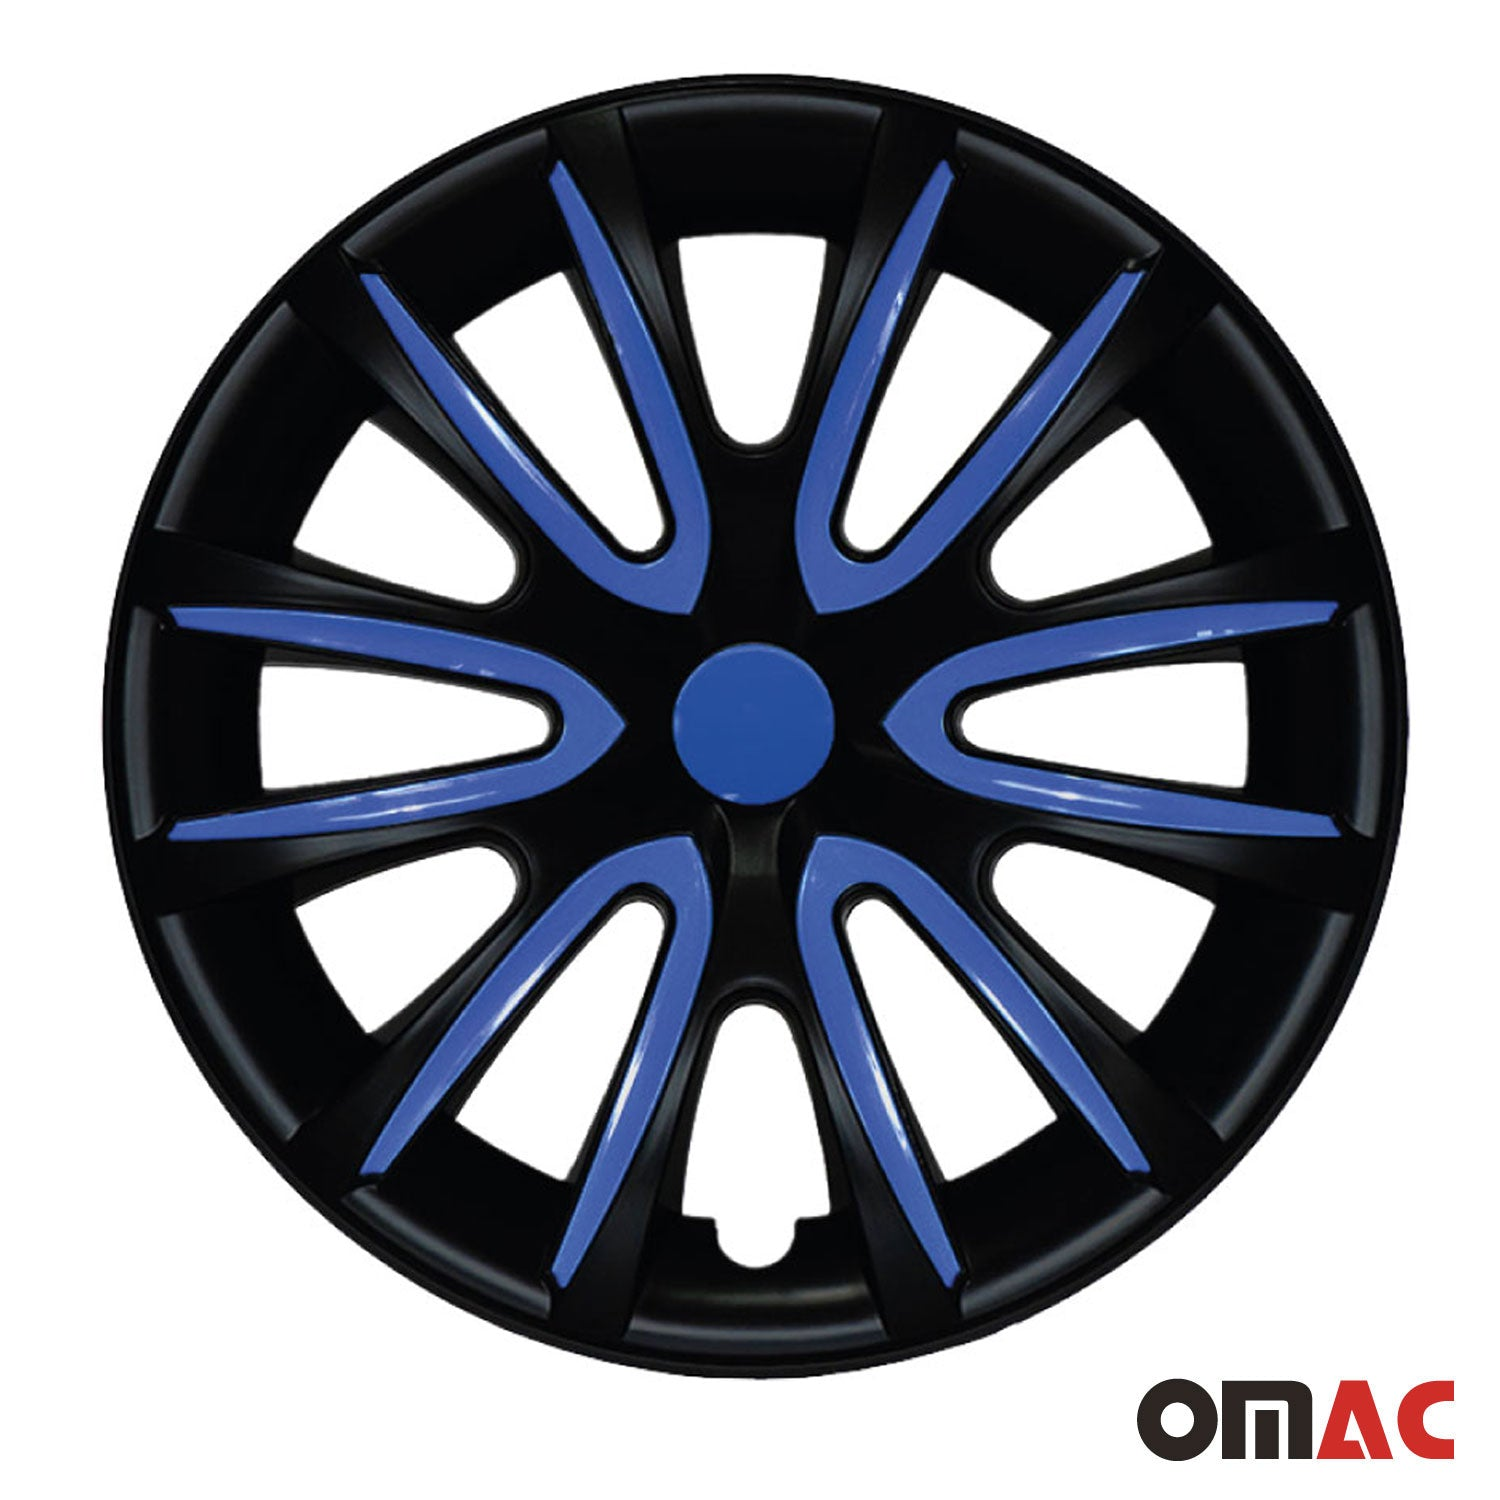 16 Inch Hubcaps Wheel Rim Cover Matt Black & Dark Blue for Chevrolet Camaro Set